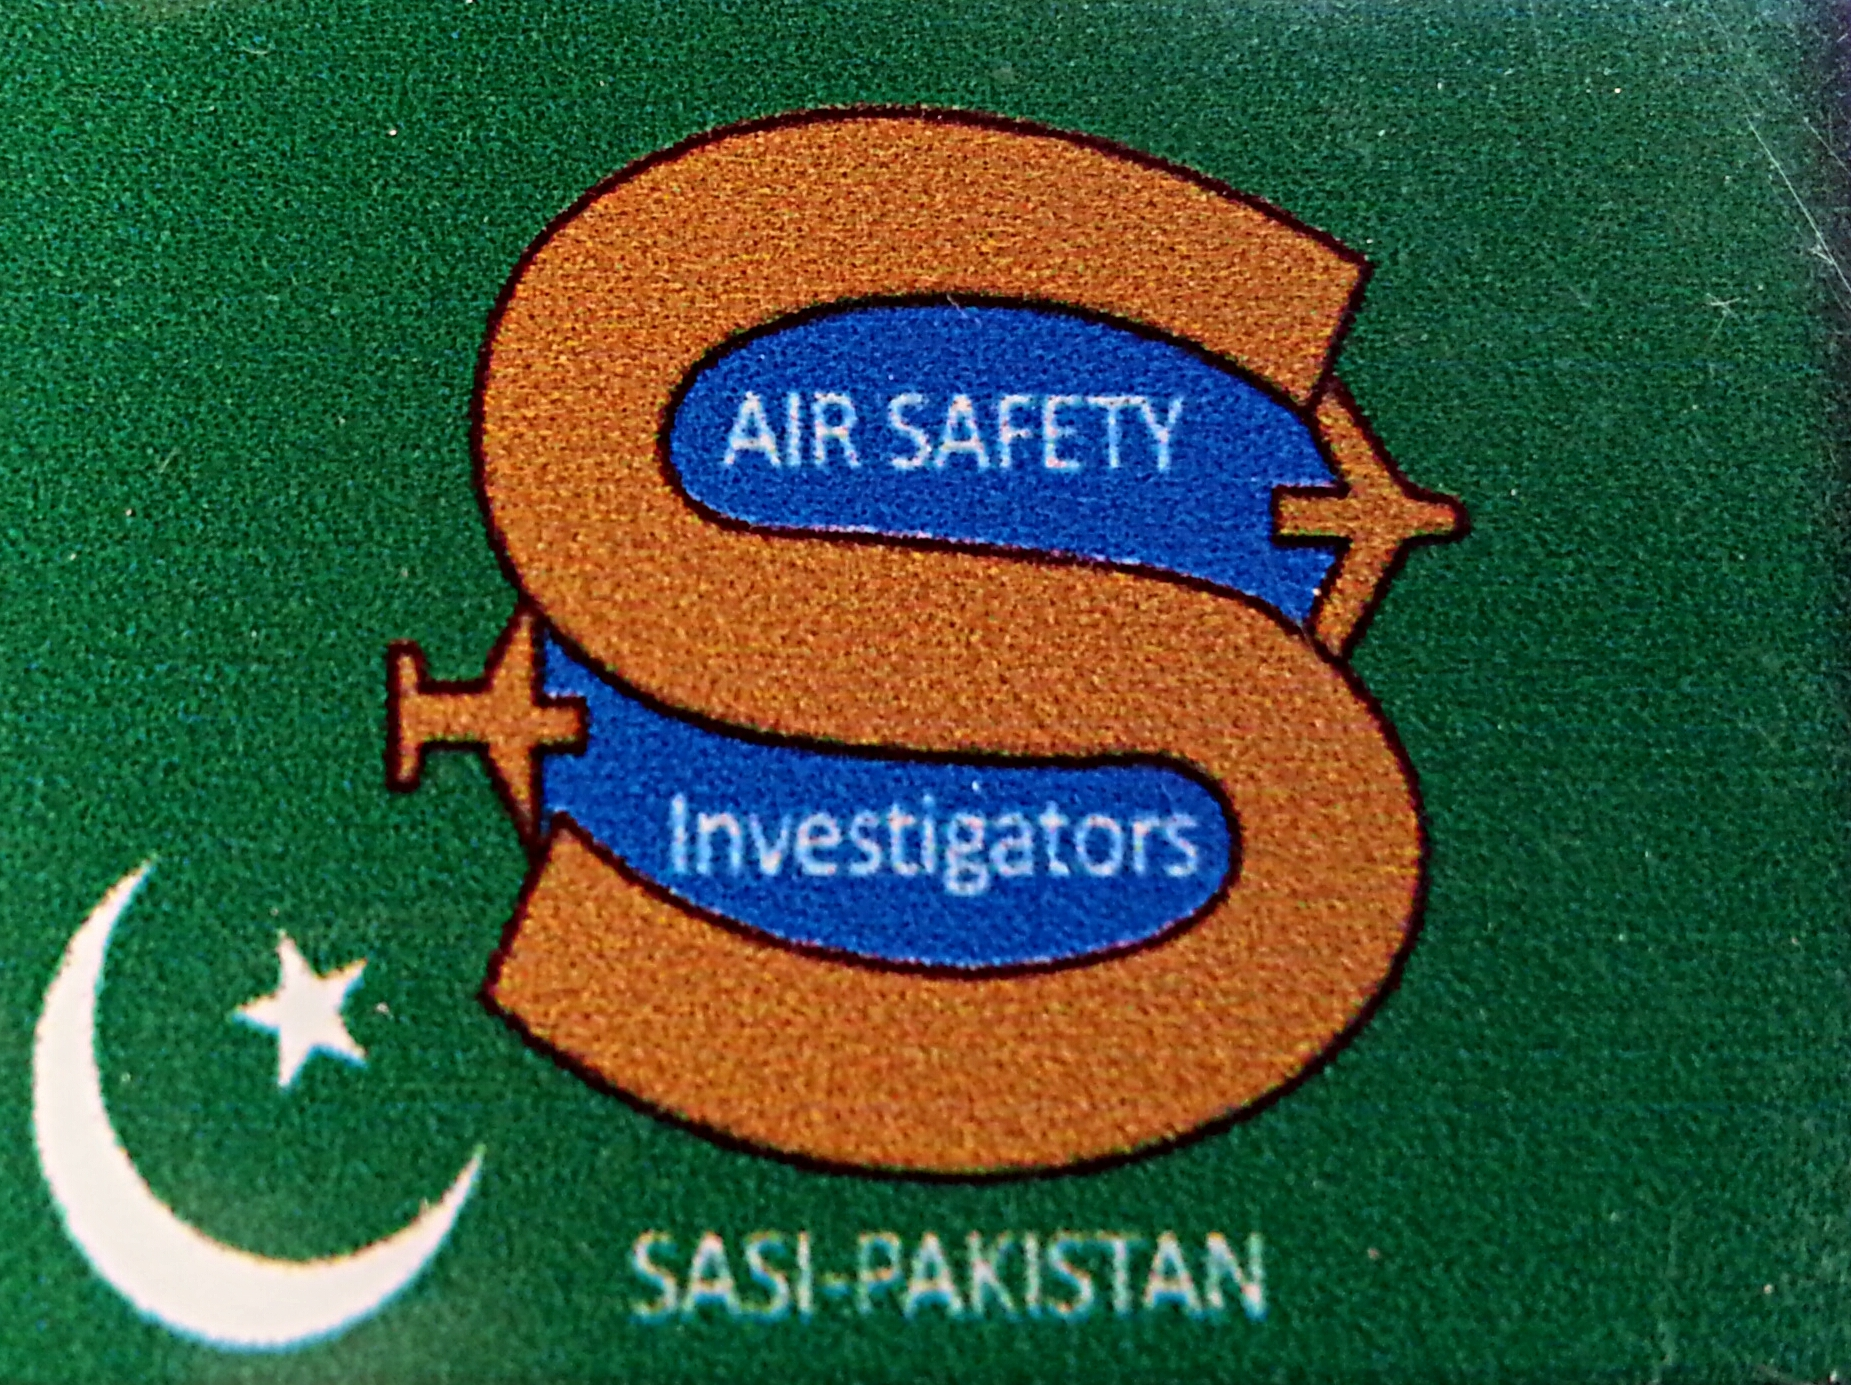 Pakistan Society of Air Safety Investigators